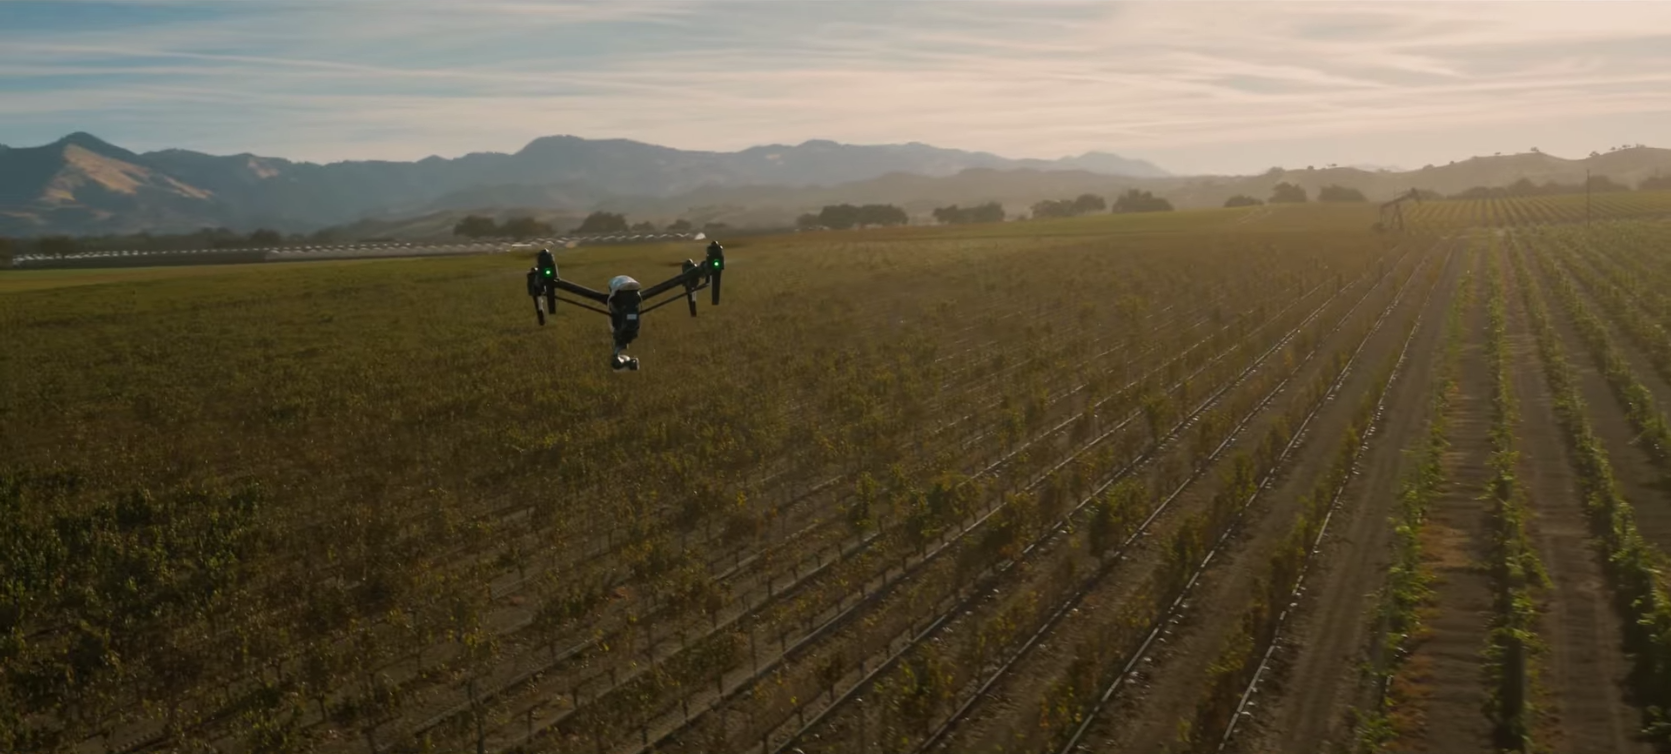 DJI Inspire 1 drone robot video screenshot